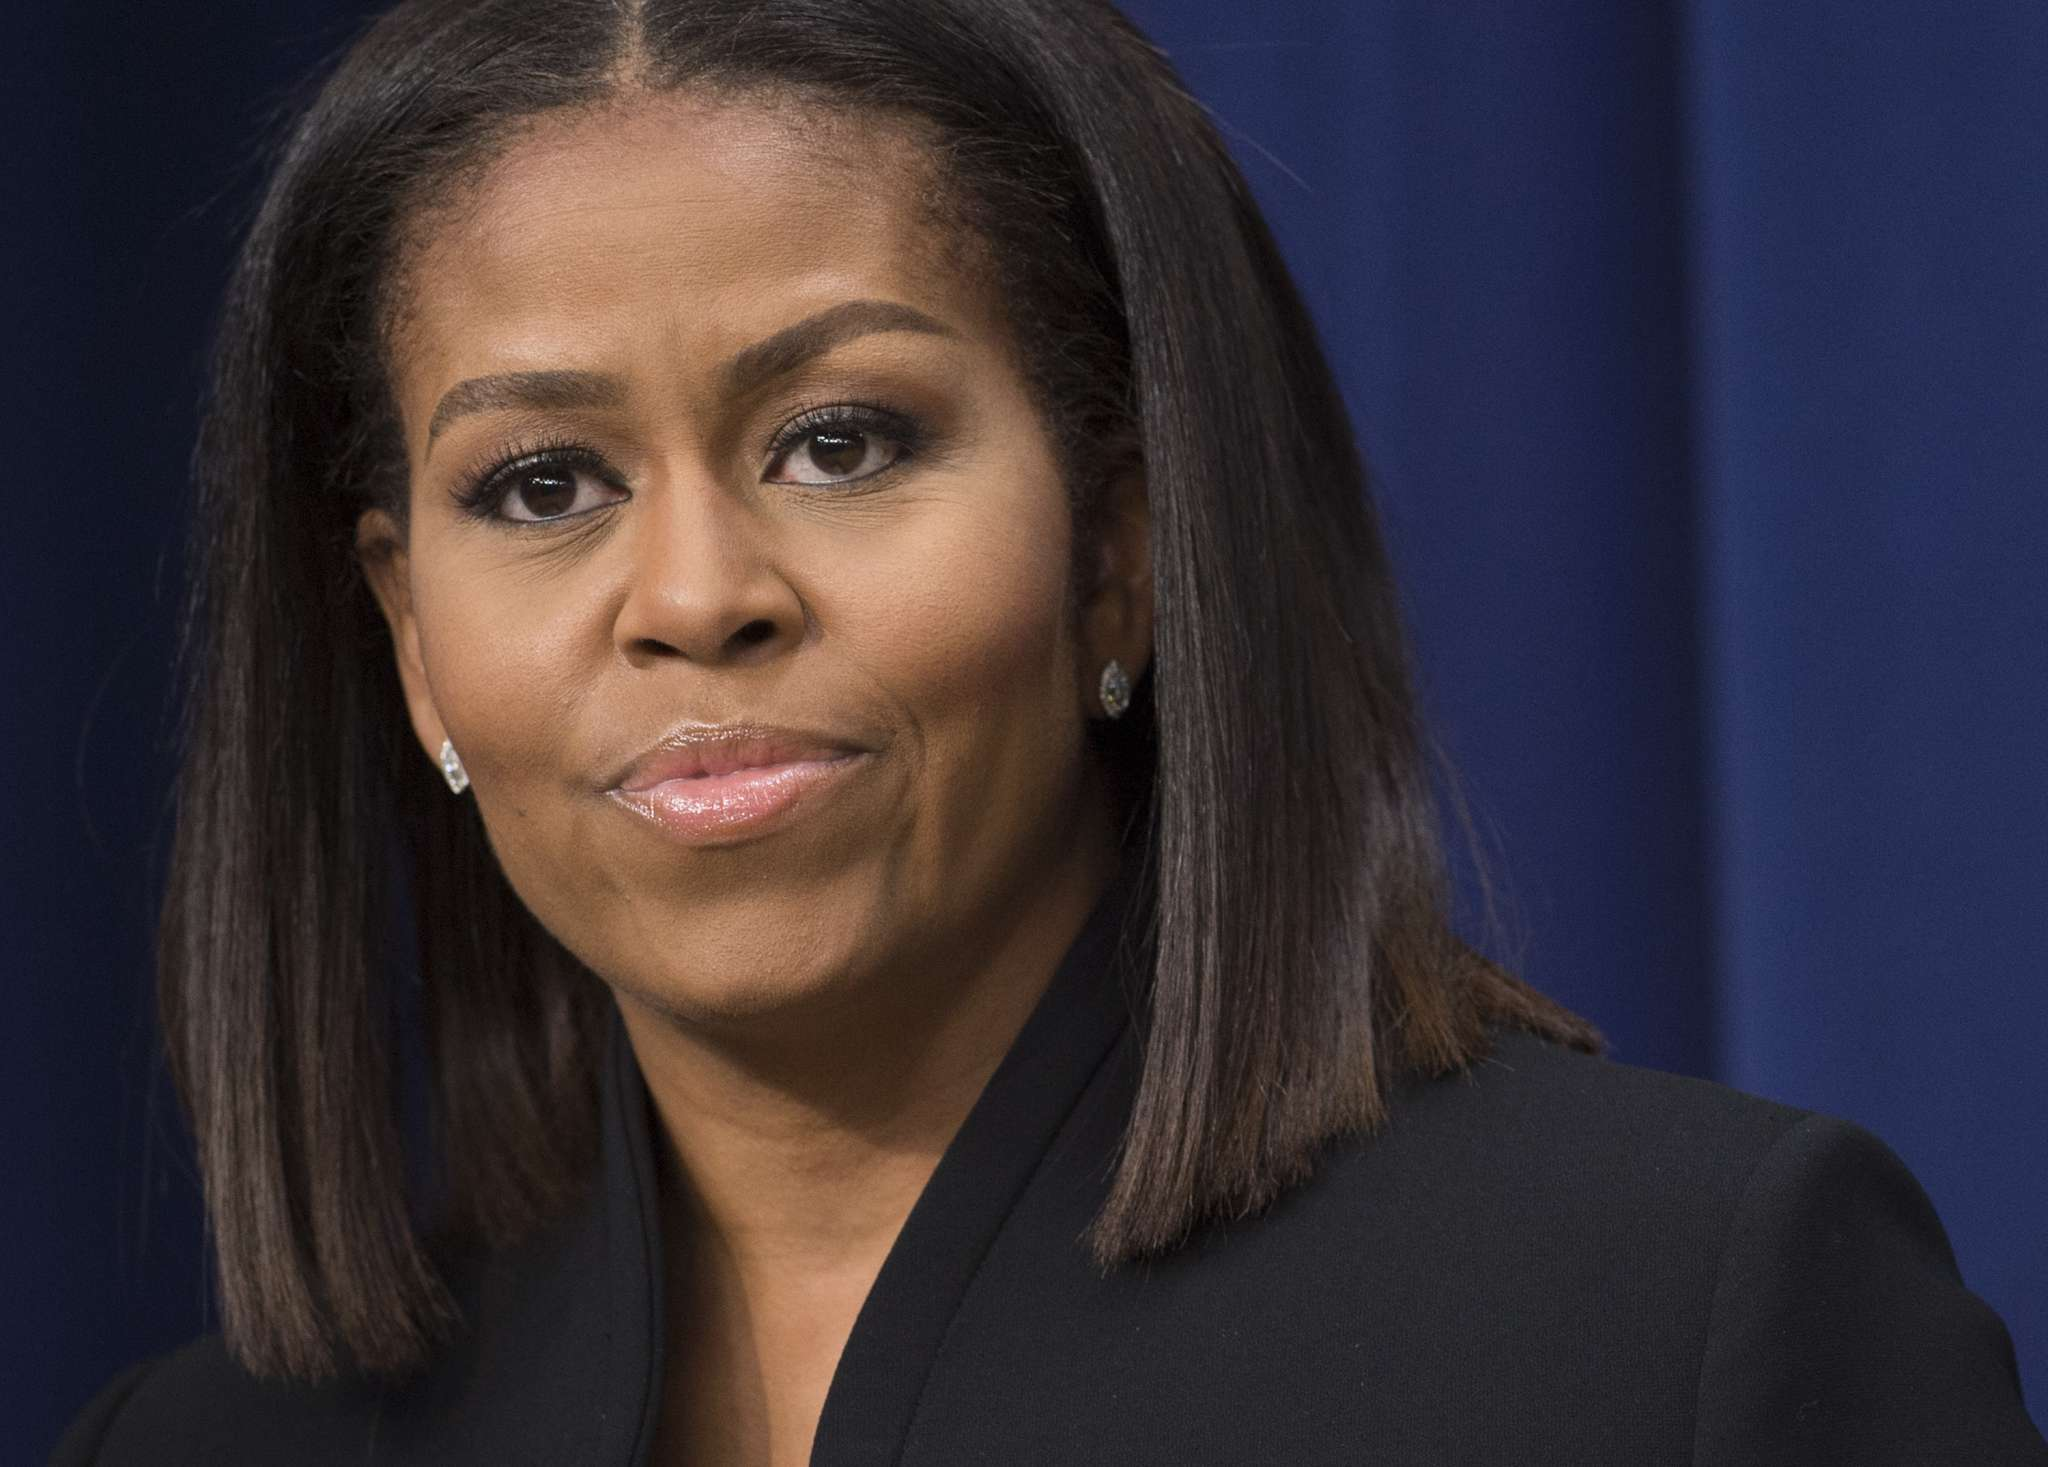 michelle-obama-shows-off-her-impressive-abs-in-cropped-t-shirt-on-national-signing-day